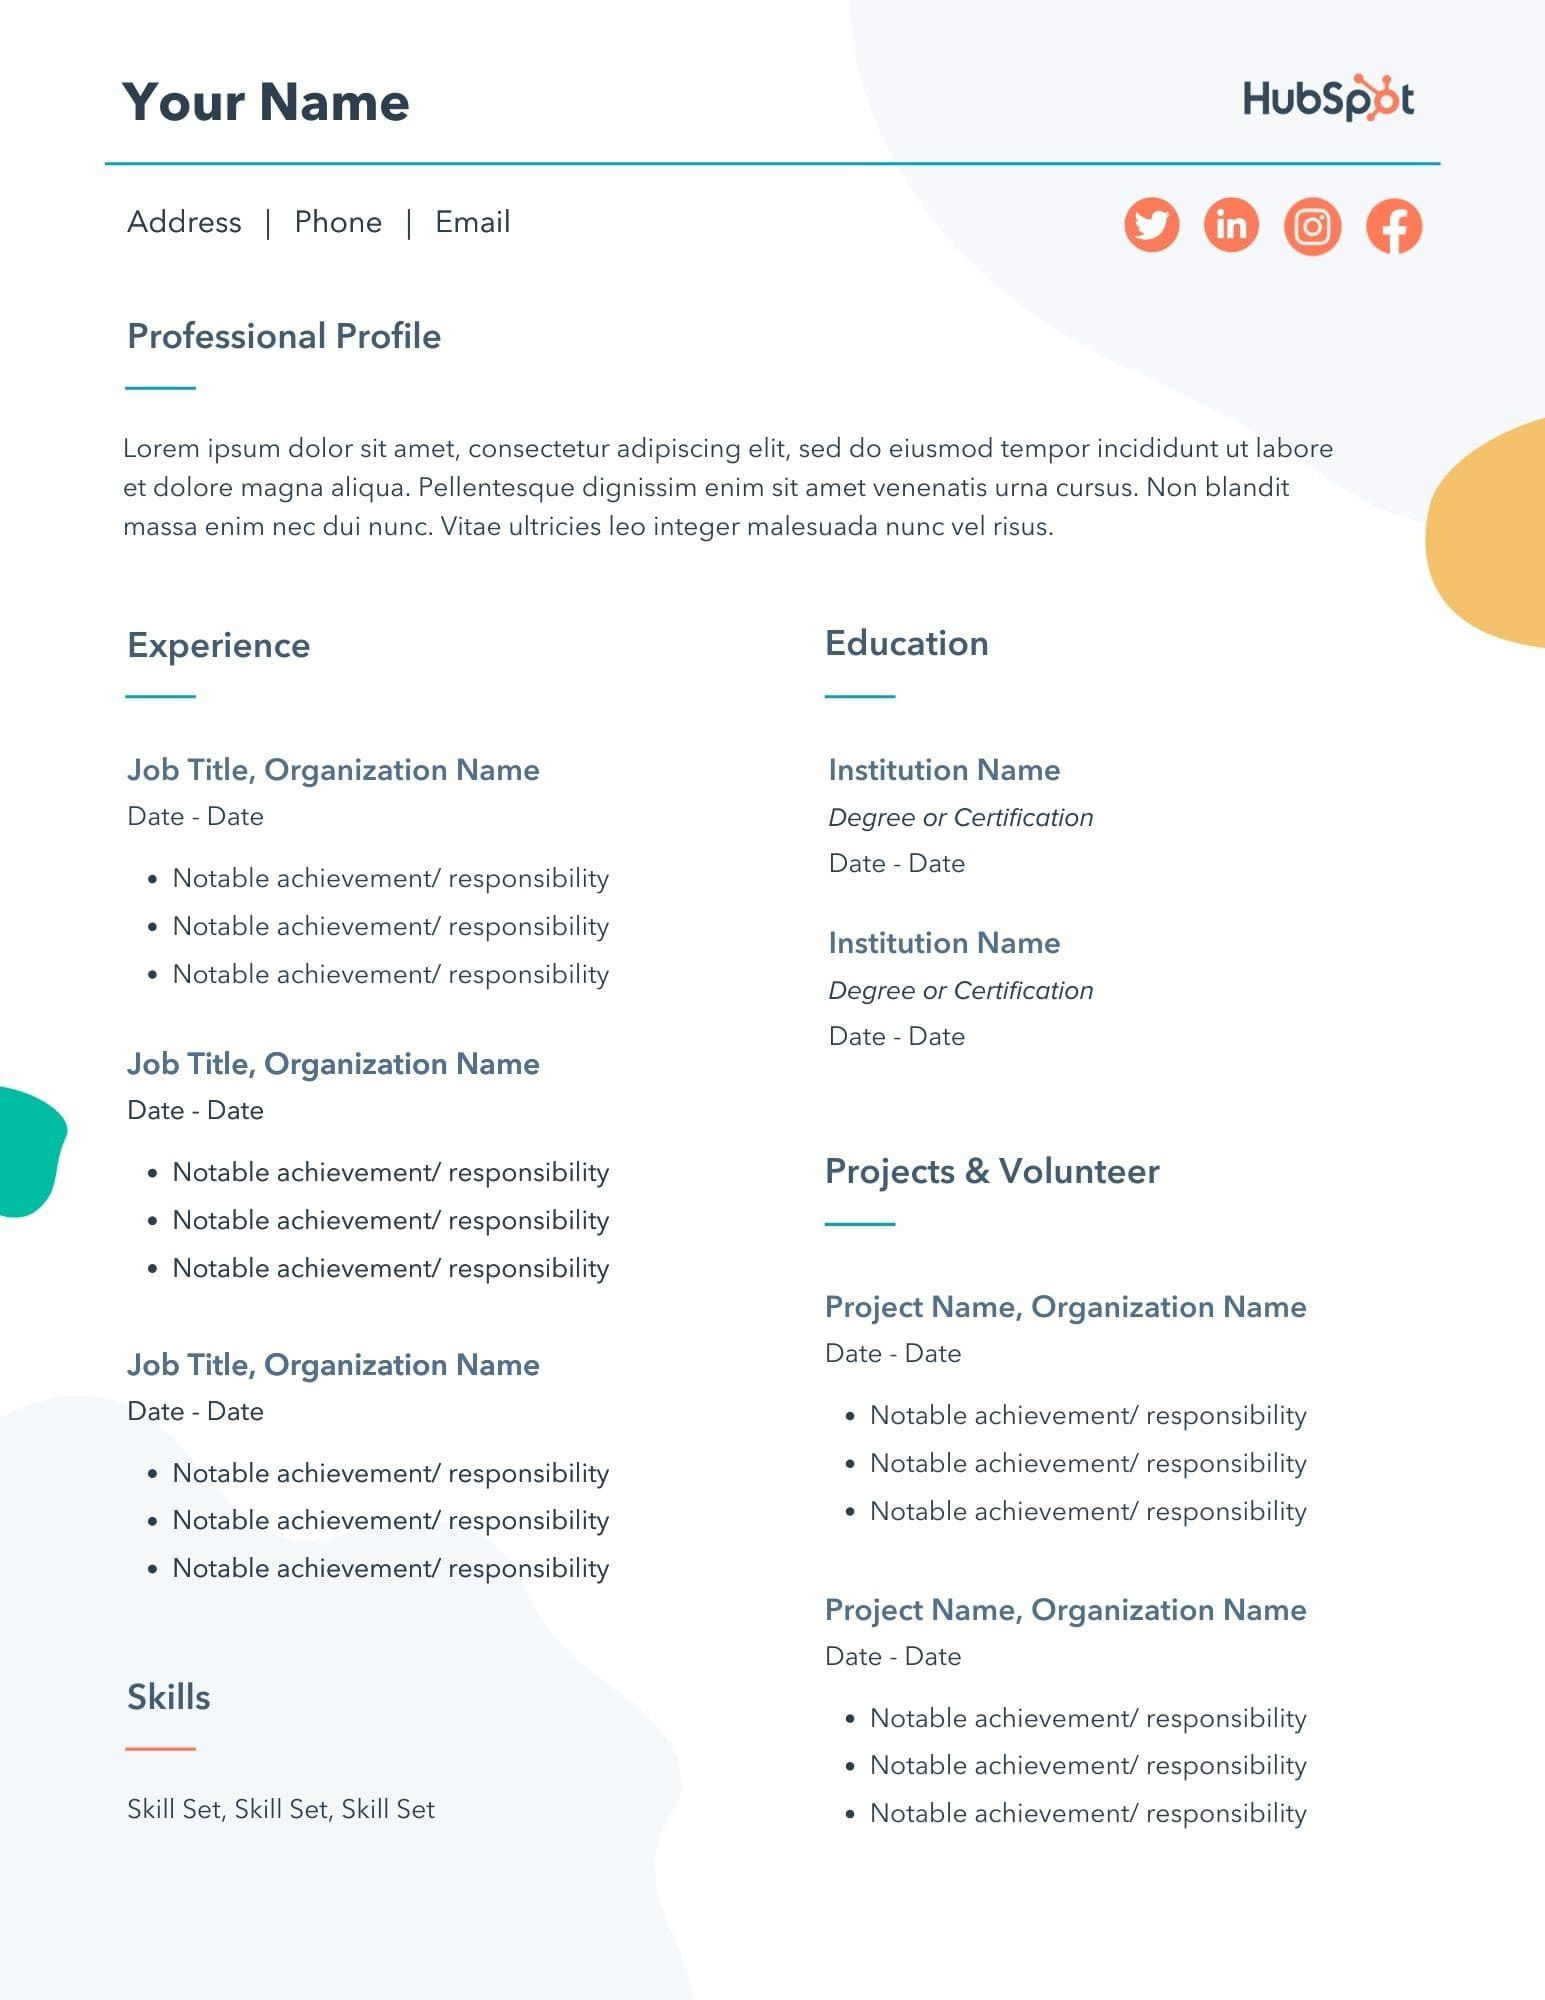 008 Dreaded Professional Resume Template Word Free Download Idea  Cv 2020 With PhotoFull